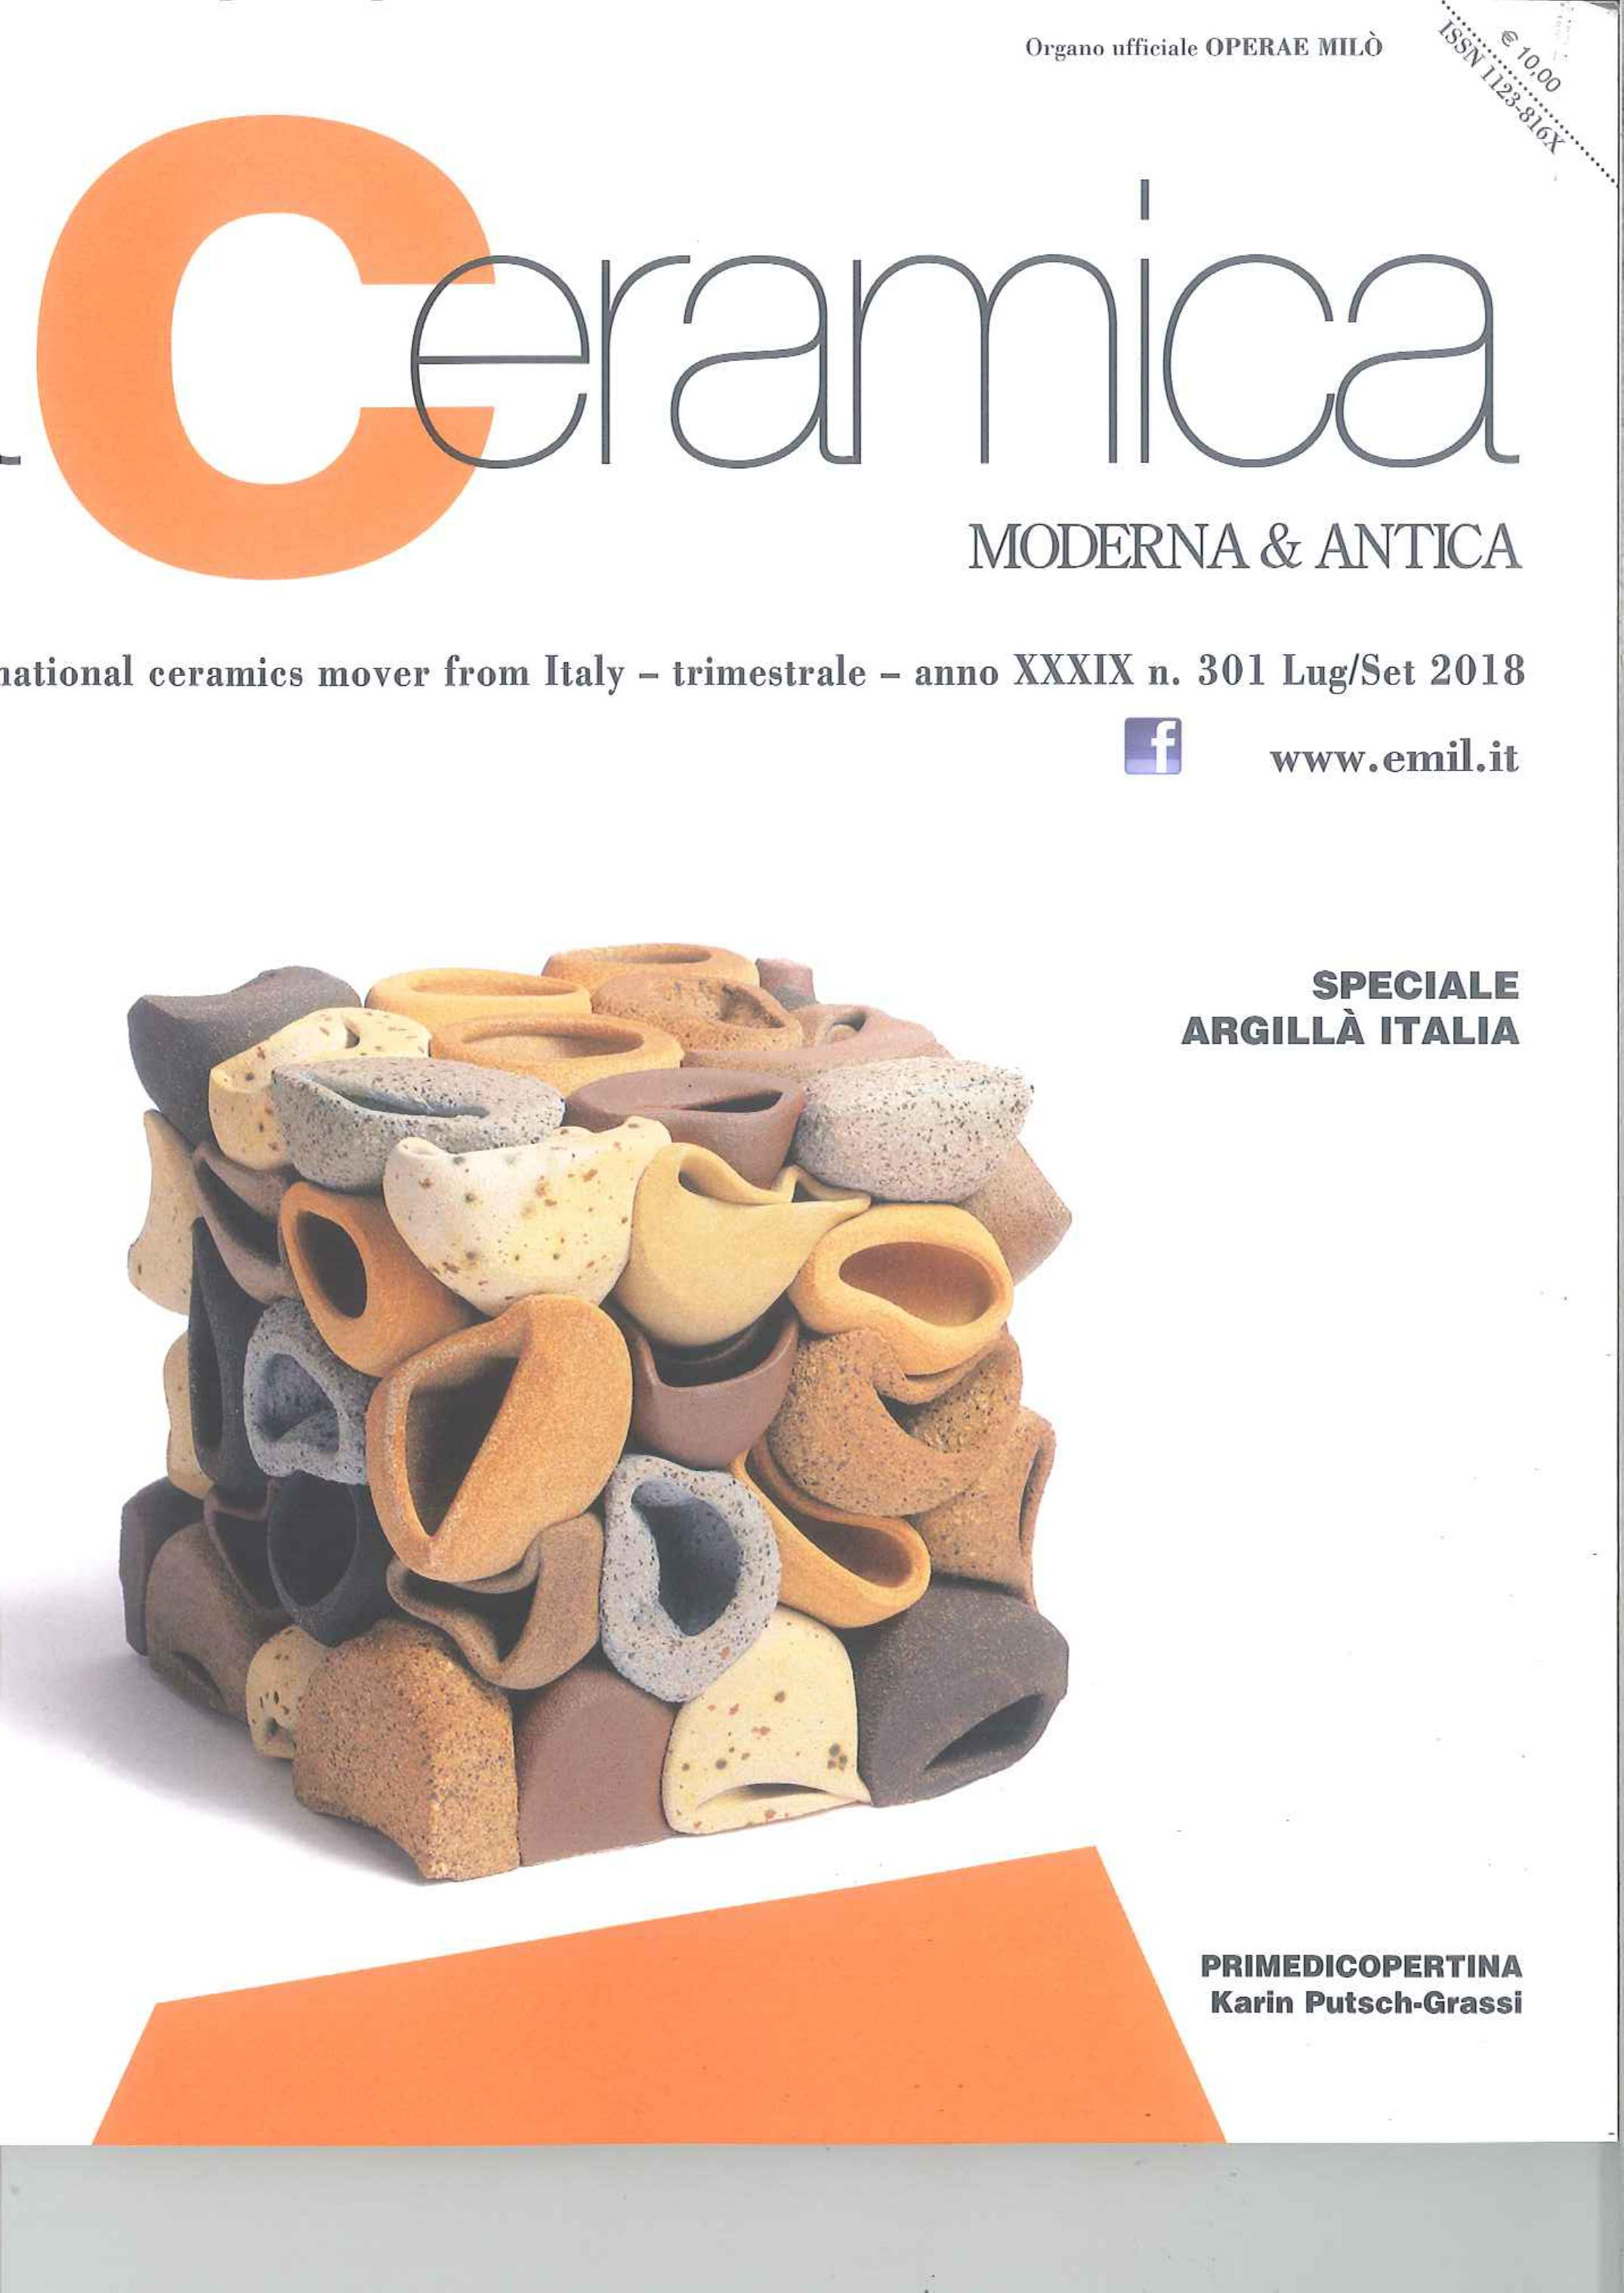 La Ceramica moderna & antica, The International ceramica mover from Italy - trimestrale - anno XXXIX n. 301 Lug/Set 2018